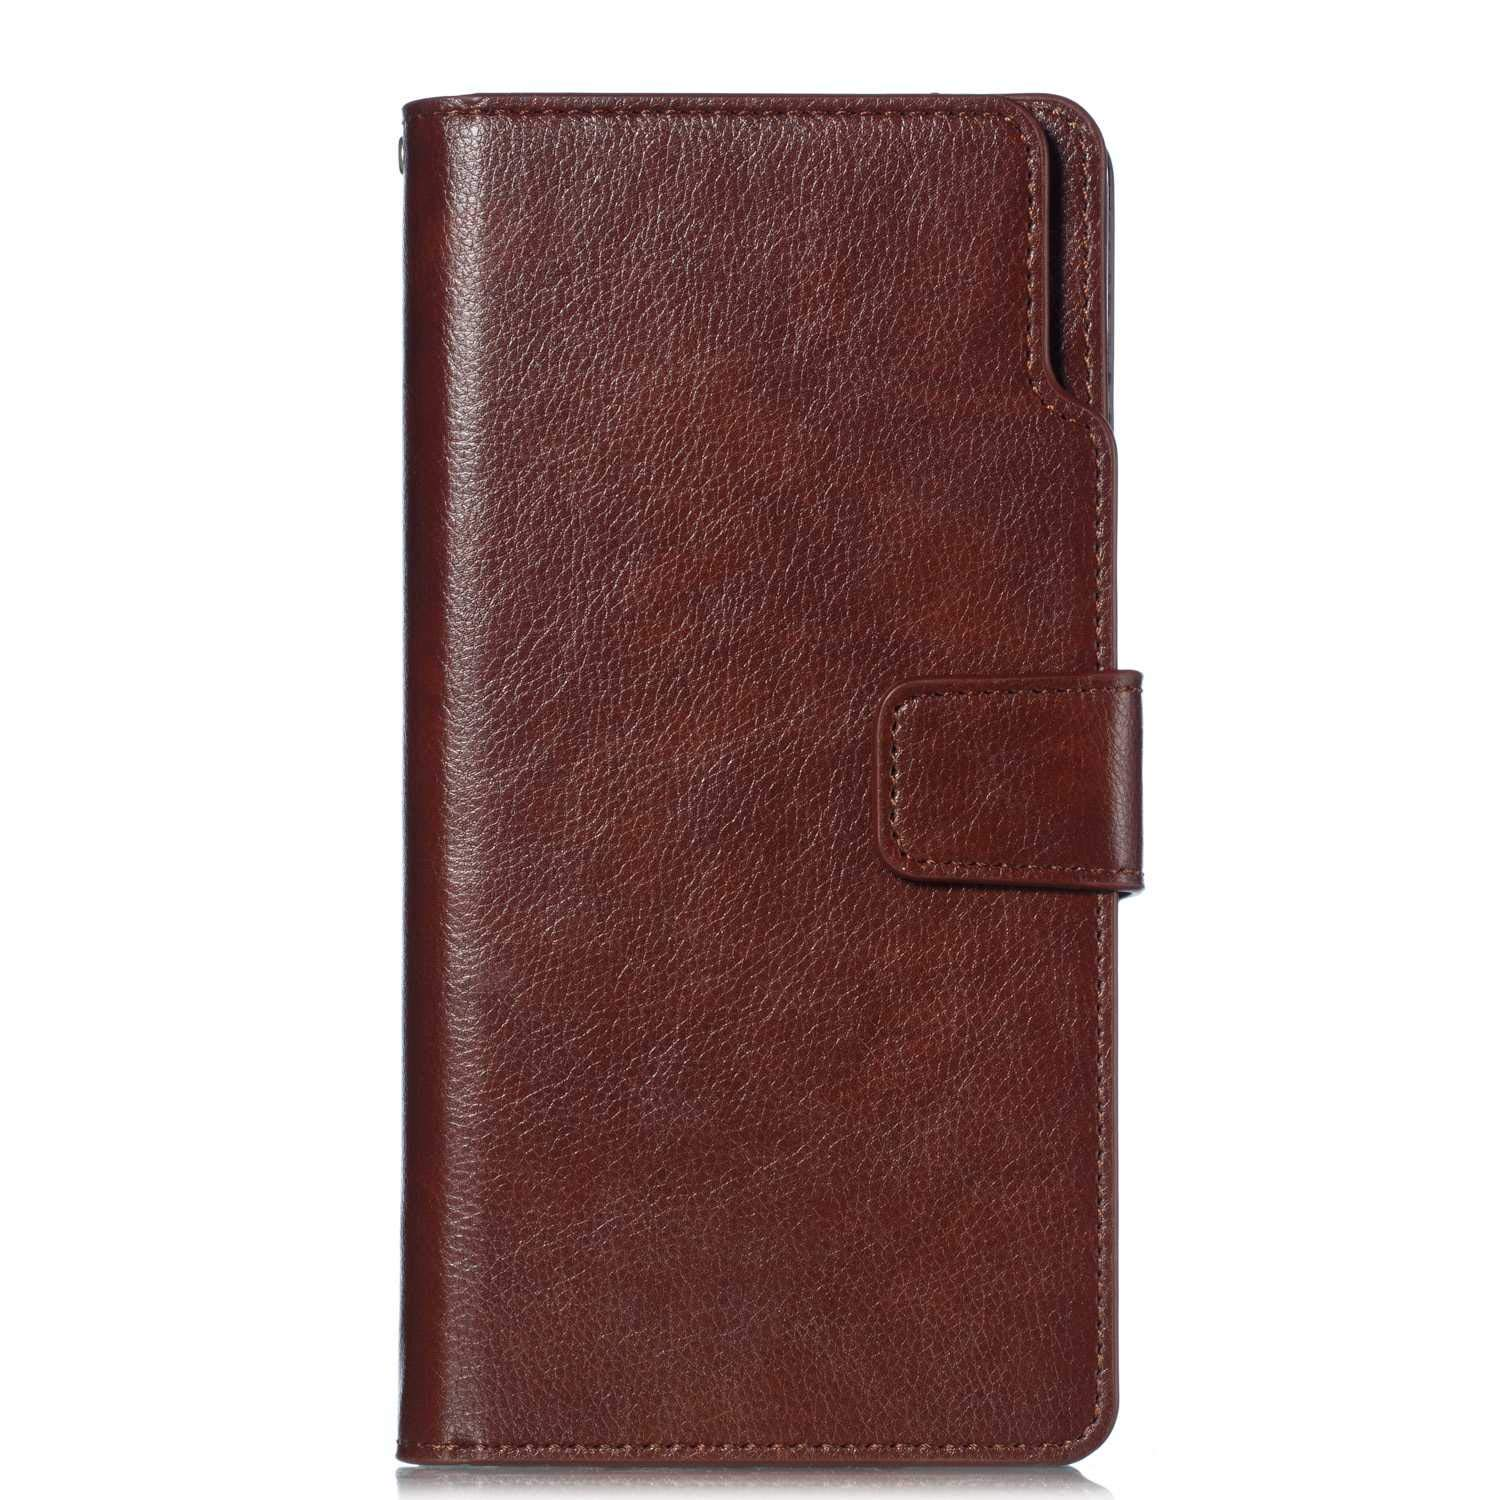 UNEXTATI Galaxy Note 8 Wallet Case, Leather Folding Flip Case with 9 Card Holder, Classic Design Protective Cover Bumper Case for Samsung Galaxy Note 8 (Brown #1)